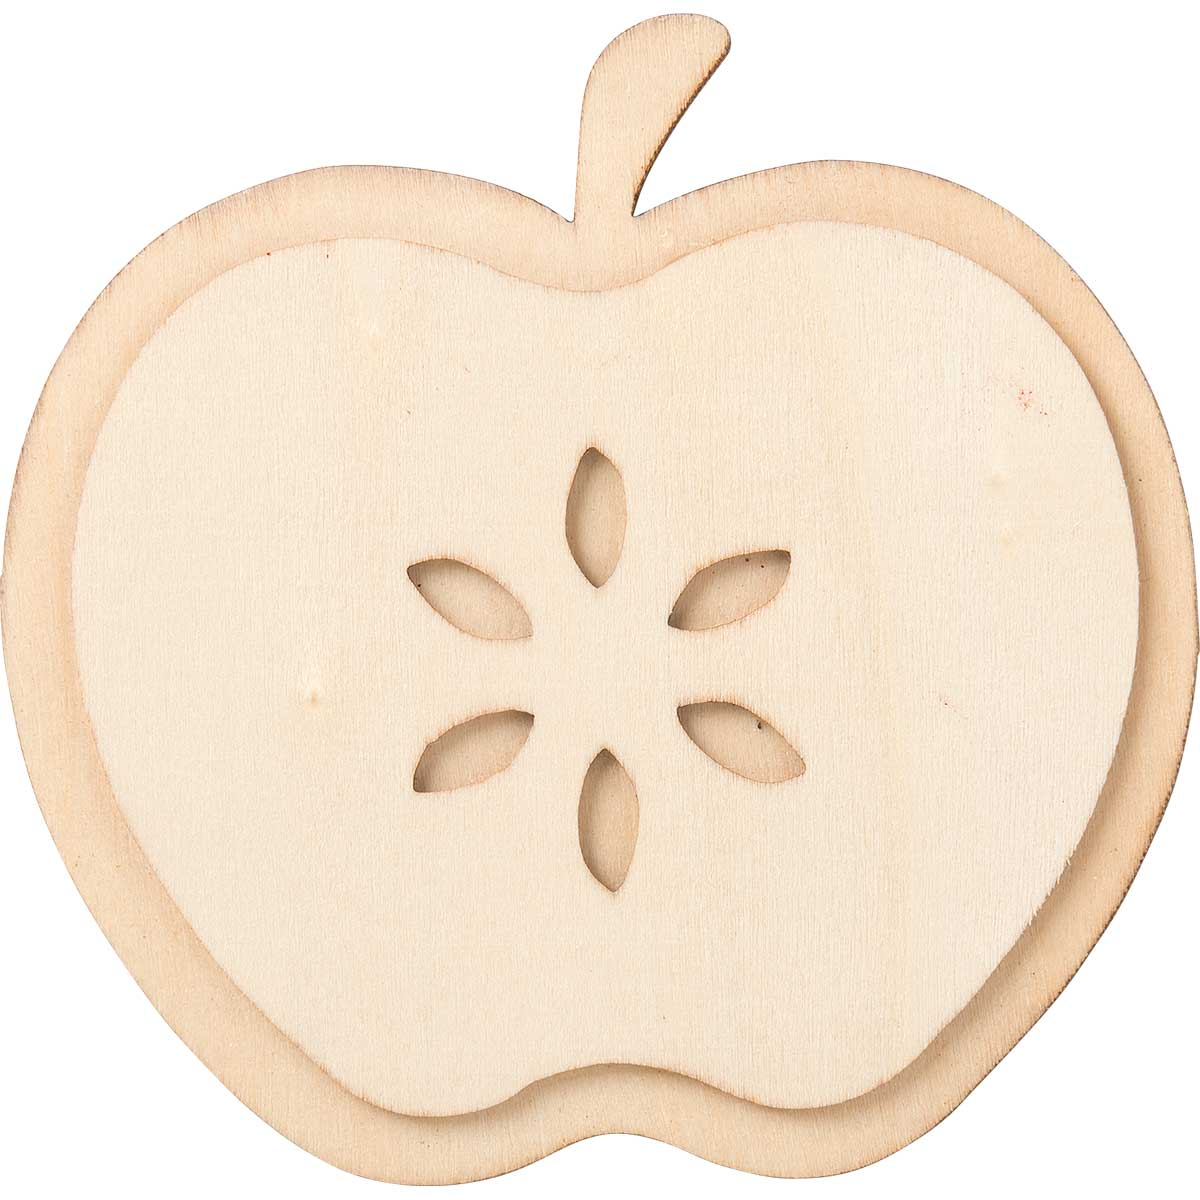 Plaid ® Wood Surfaces - Unpainted Layered Shapes - Apple